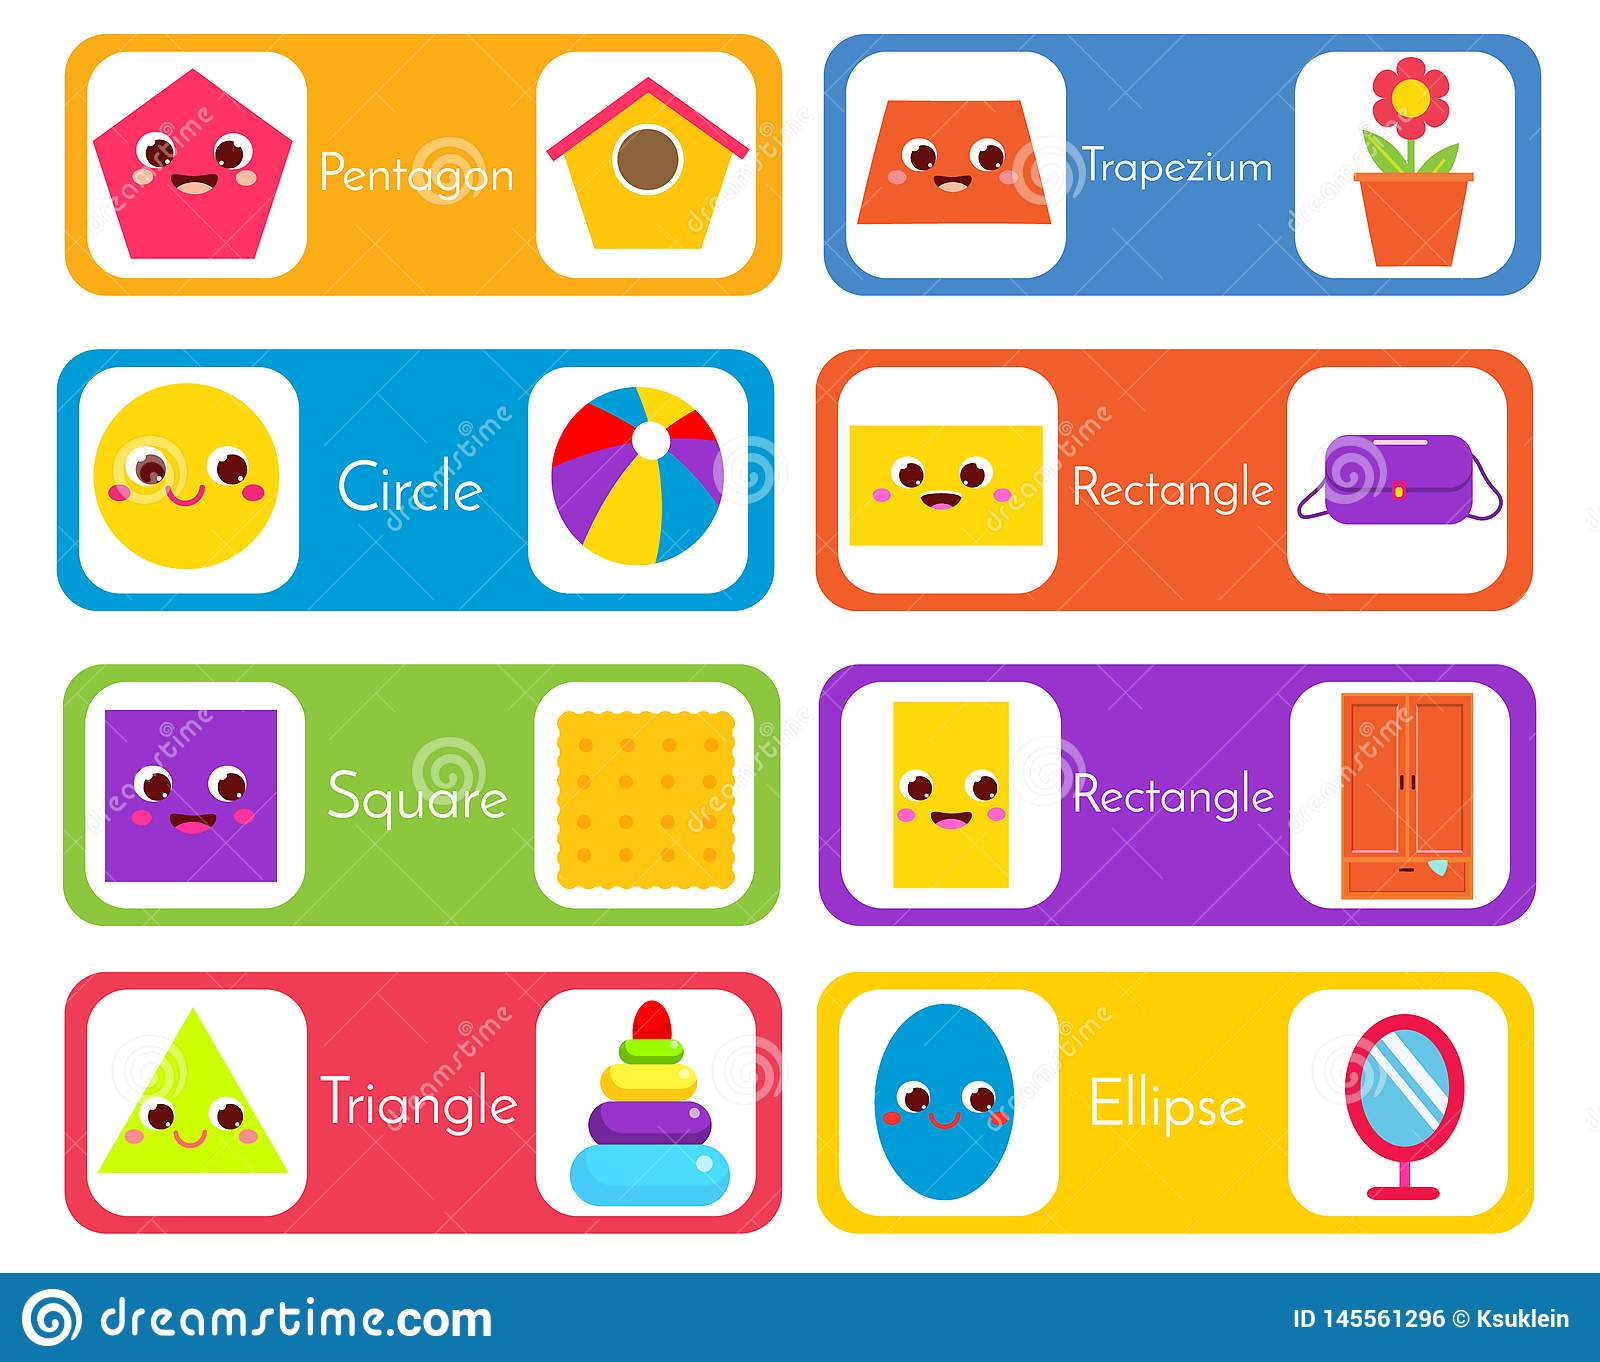 Learning Geometric Shapes For Kids Set Of Flashcards Wtih